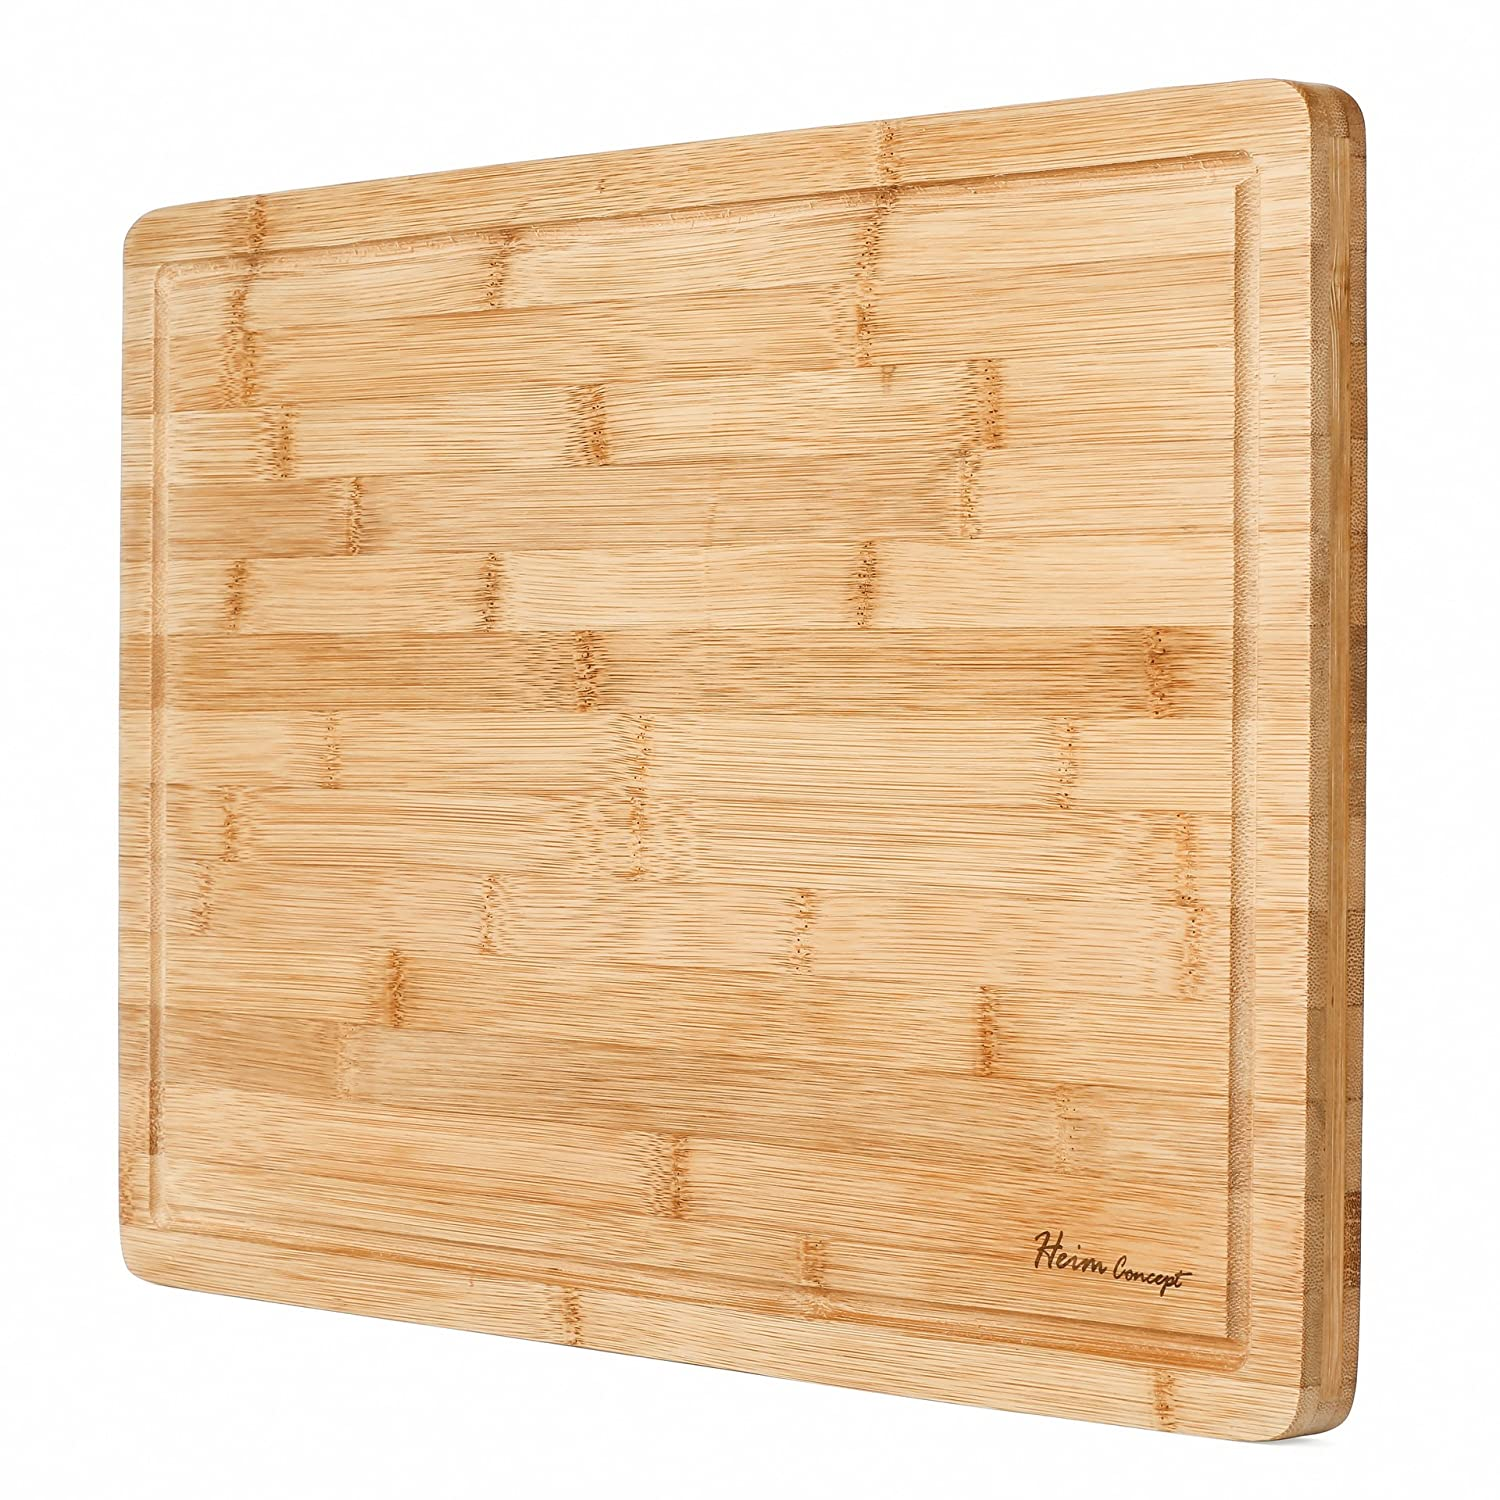 Heim Concept Premium Organic Bamboo Cutting Board Via Amazon